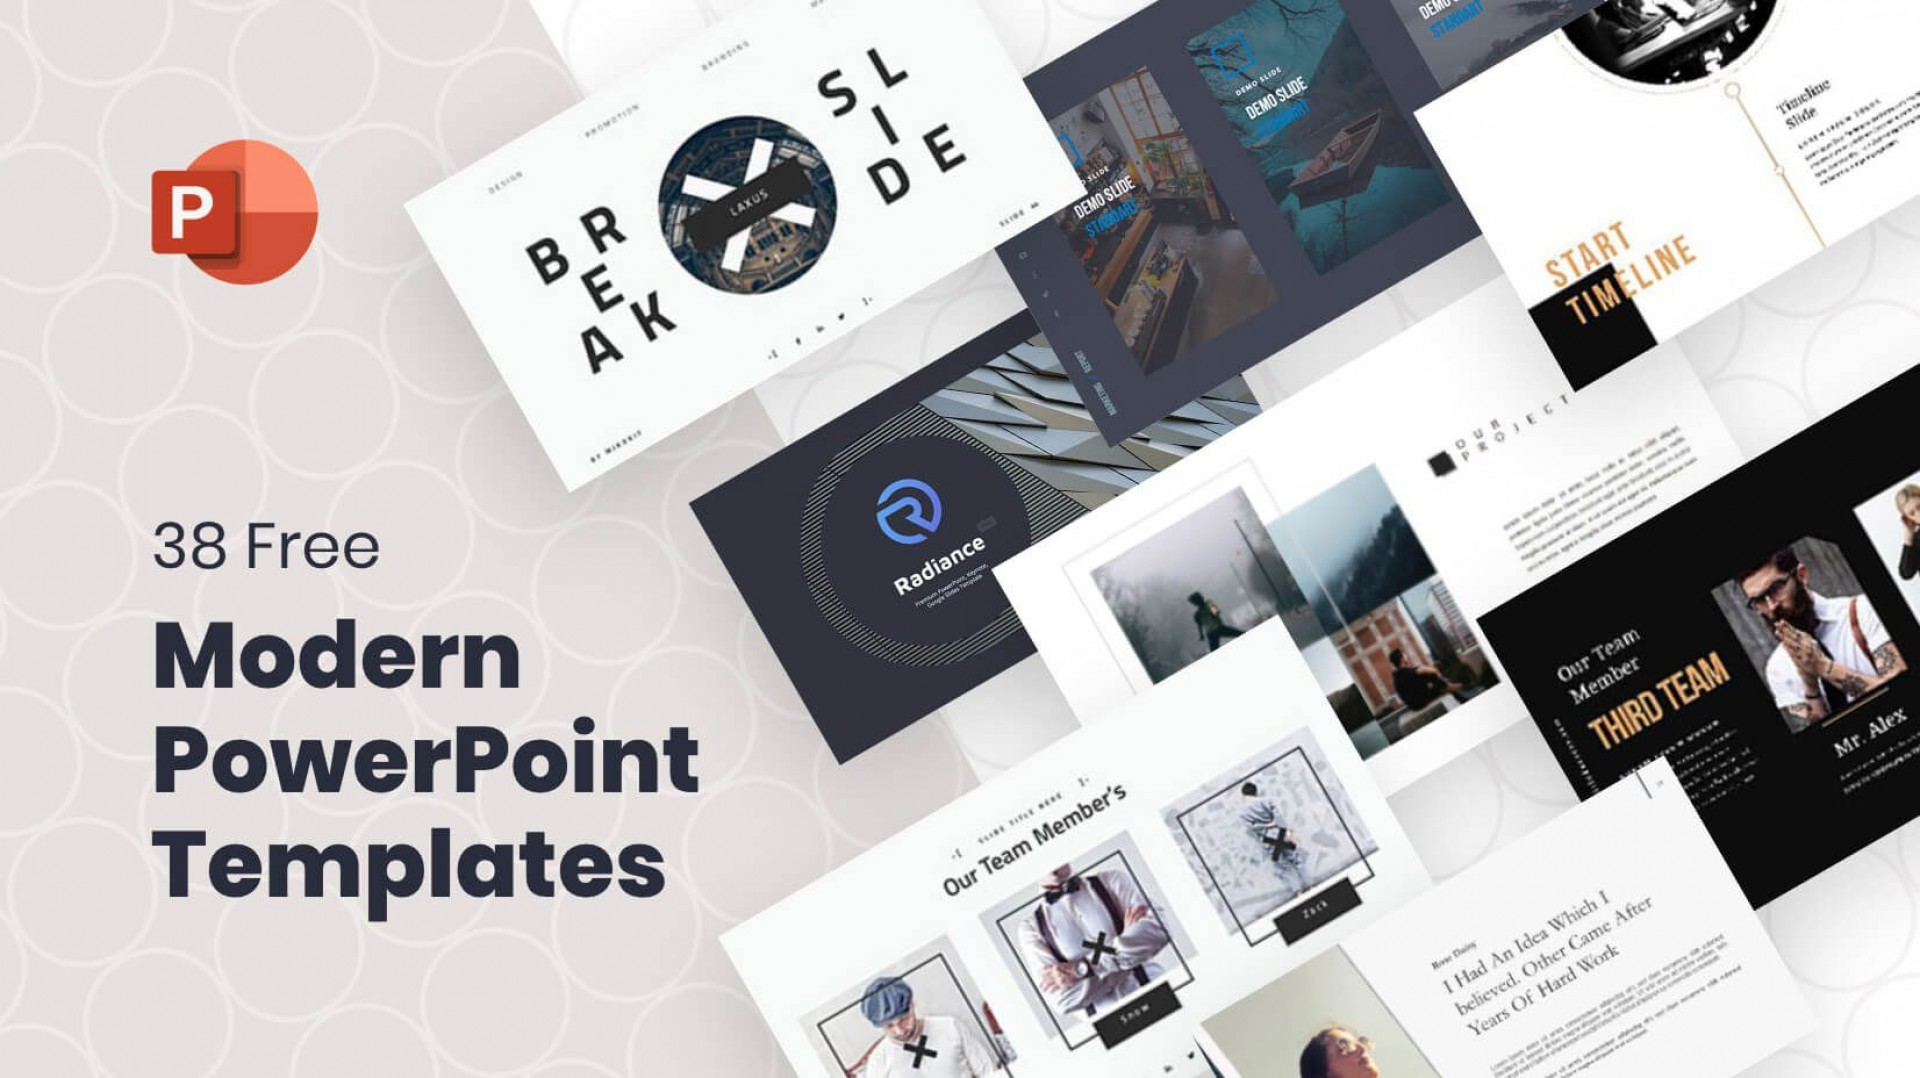 001 Awful Free Download Ppt Template For Technical Presentation Highest Quality  Simple Project Sample1920